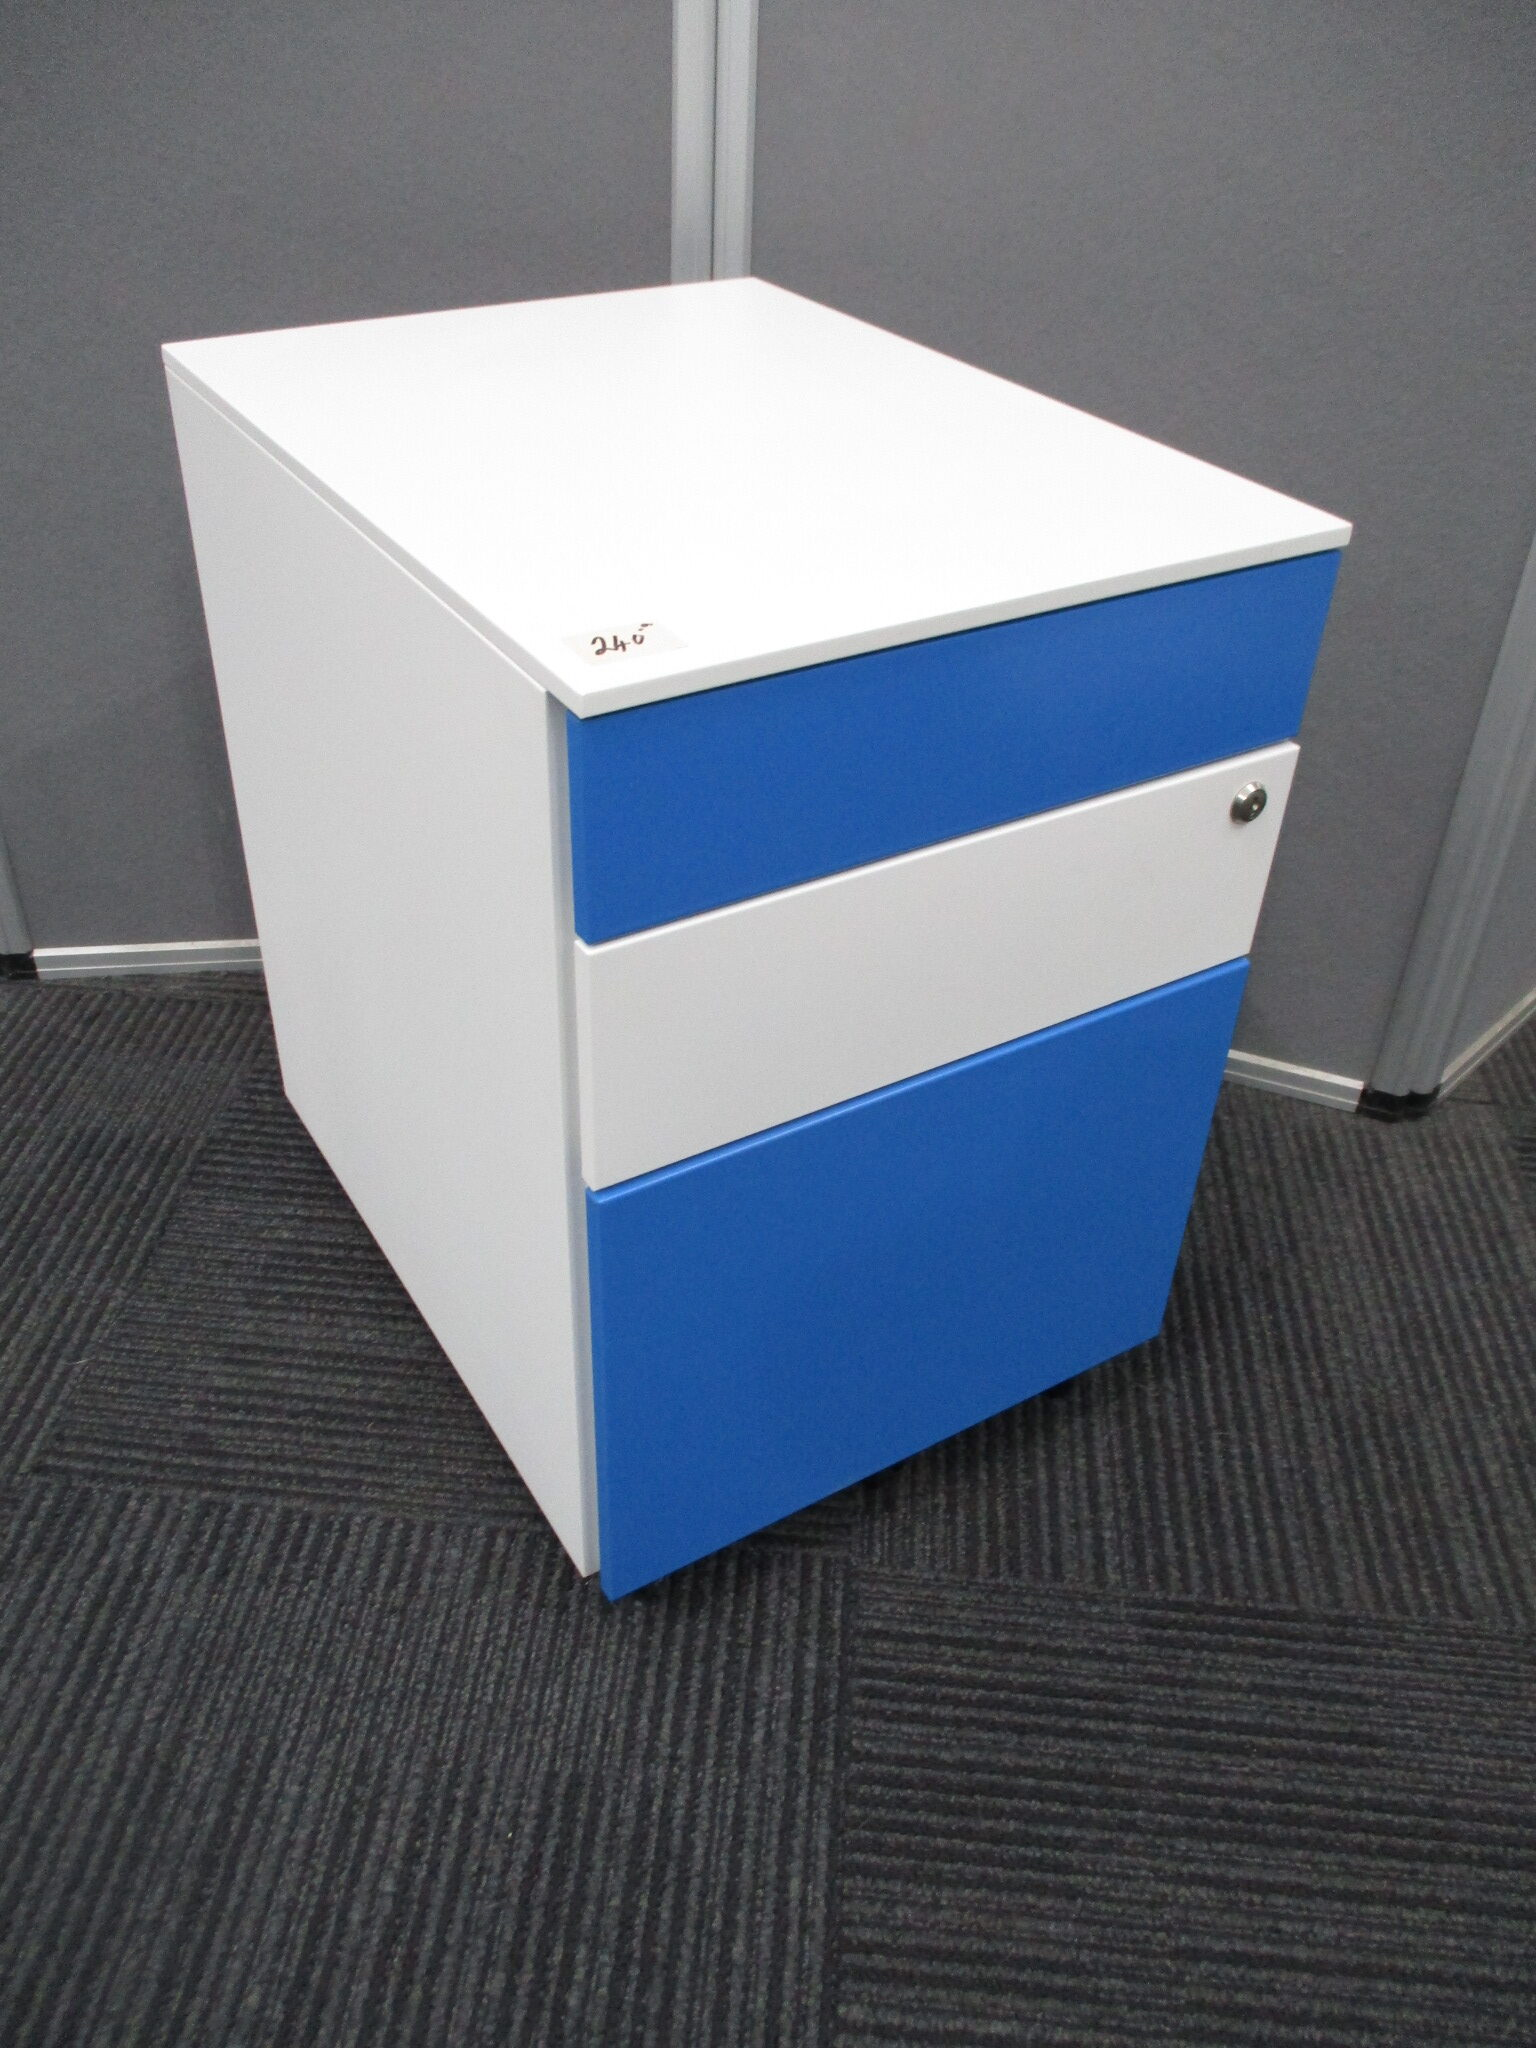 New Itsu Blue and White Steel 3 Drawer Mobile Pedestal $240